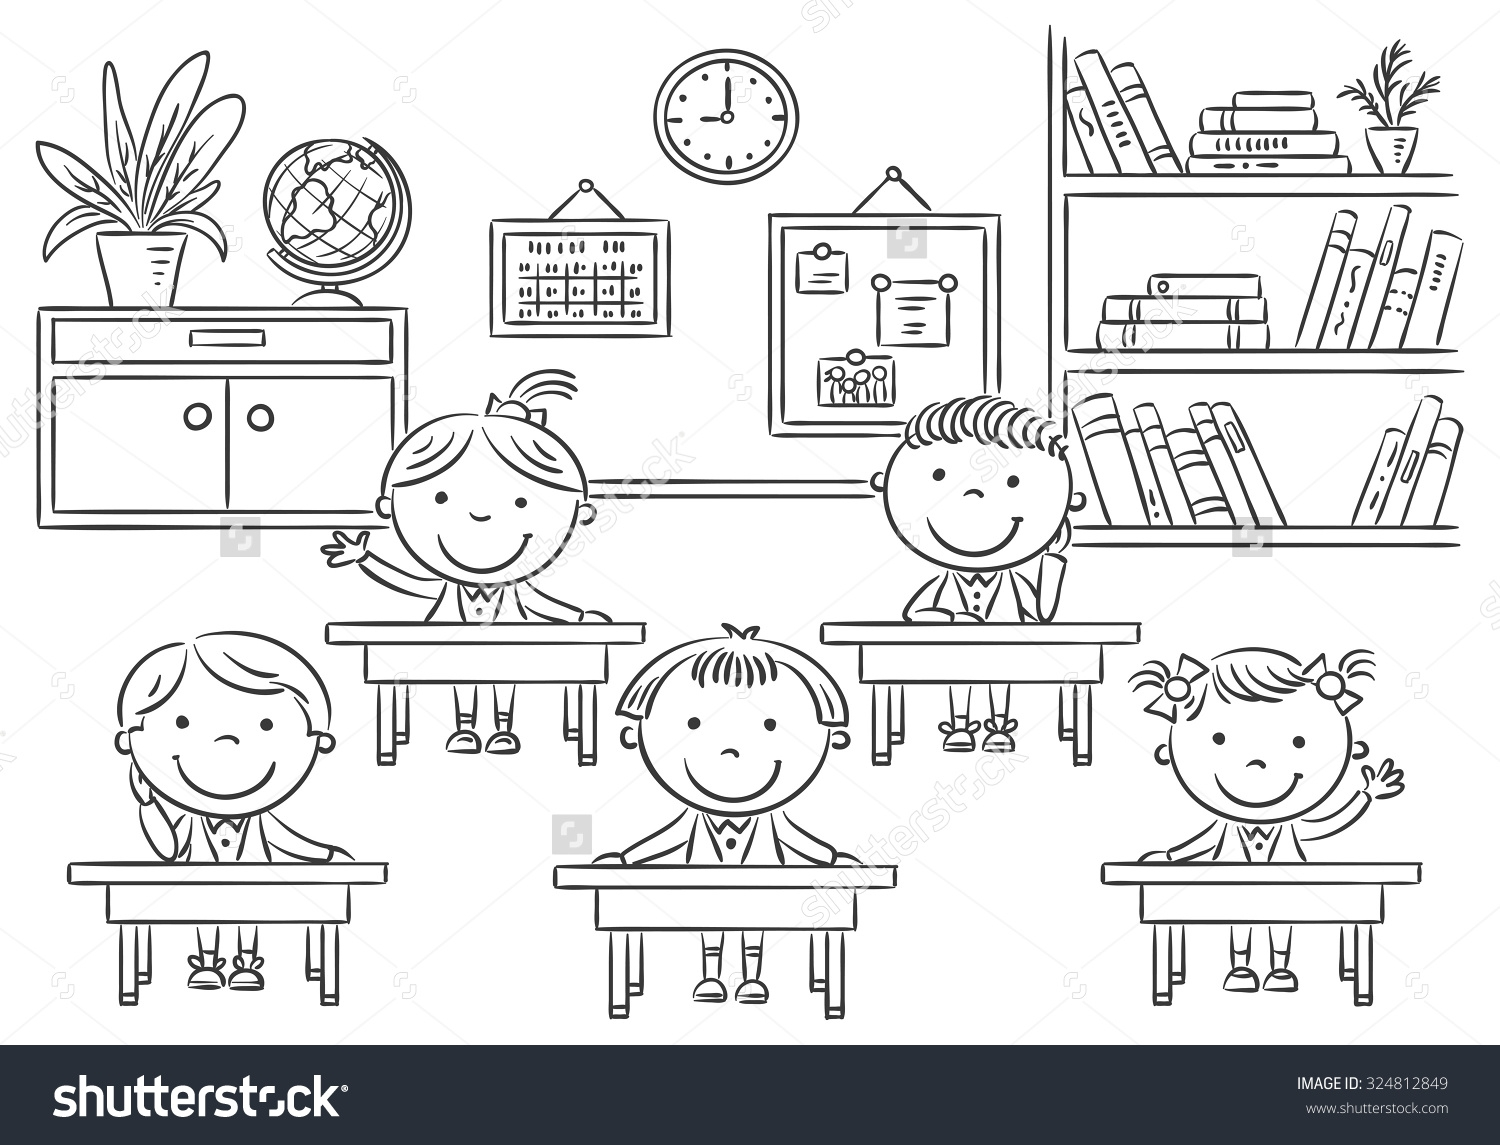 Student Clipart Black And White: School Room Clipart Black And White